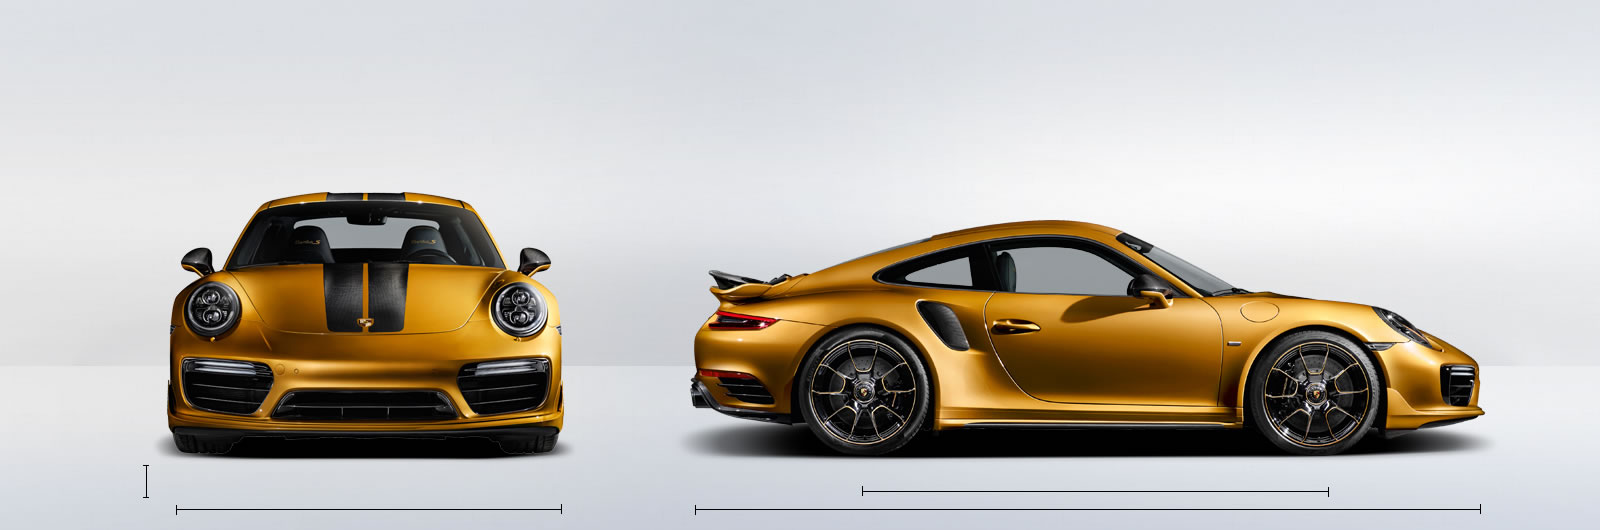 911 Turbo S Exclusive Specifications